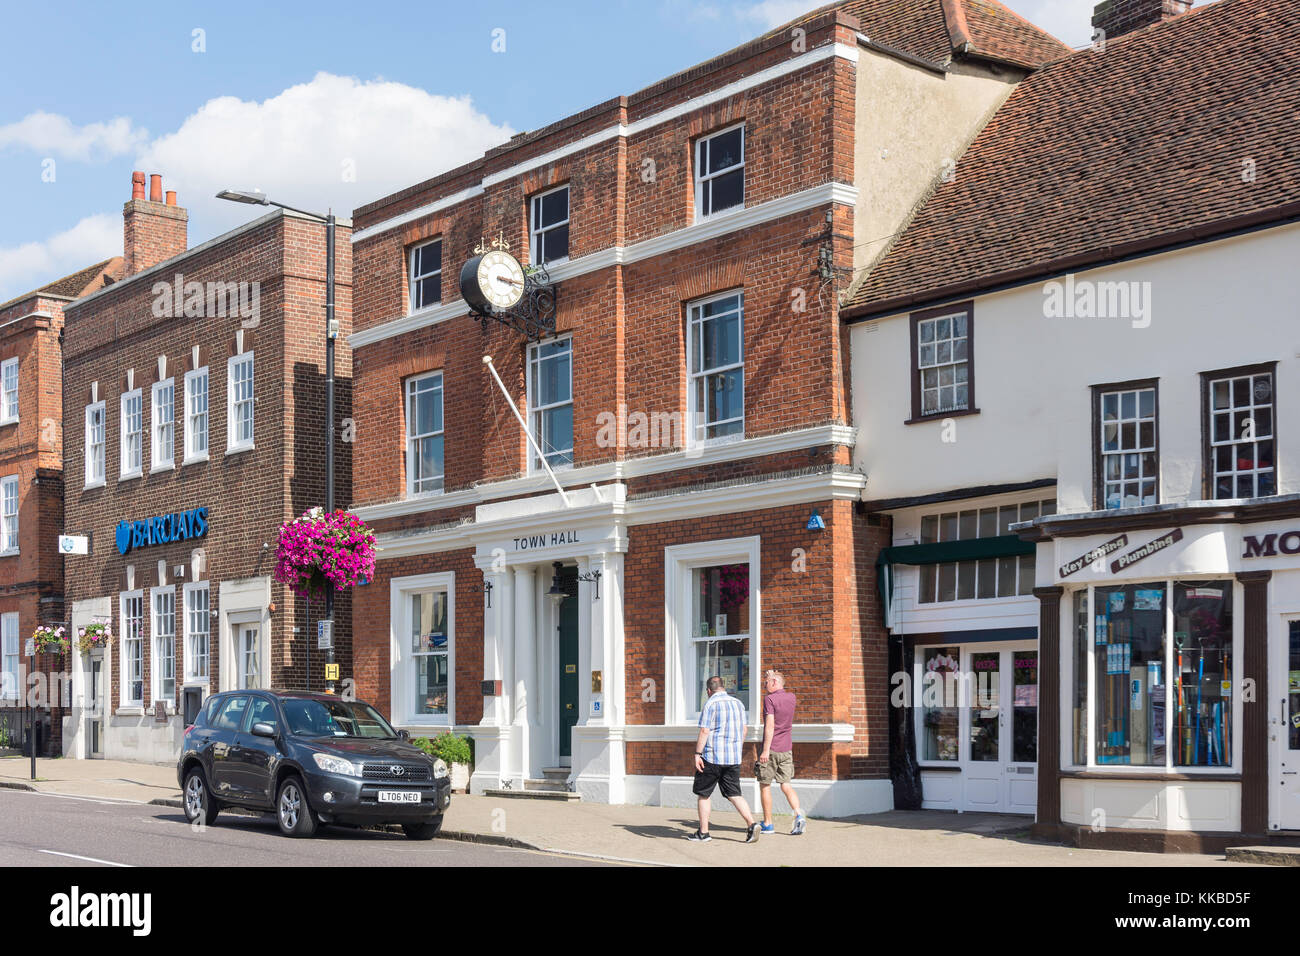 Witham Town Council Local Authority. Town Hall, Newland Street, Witham, Essex, England, United Kingdom - Stock Image